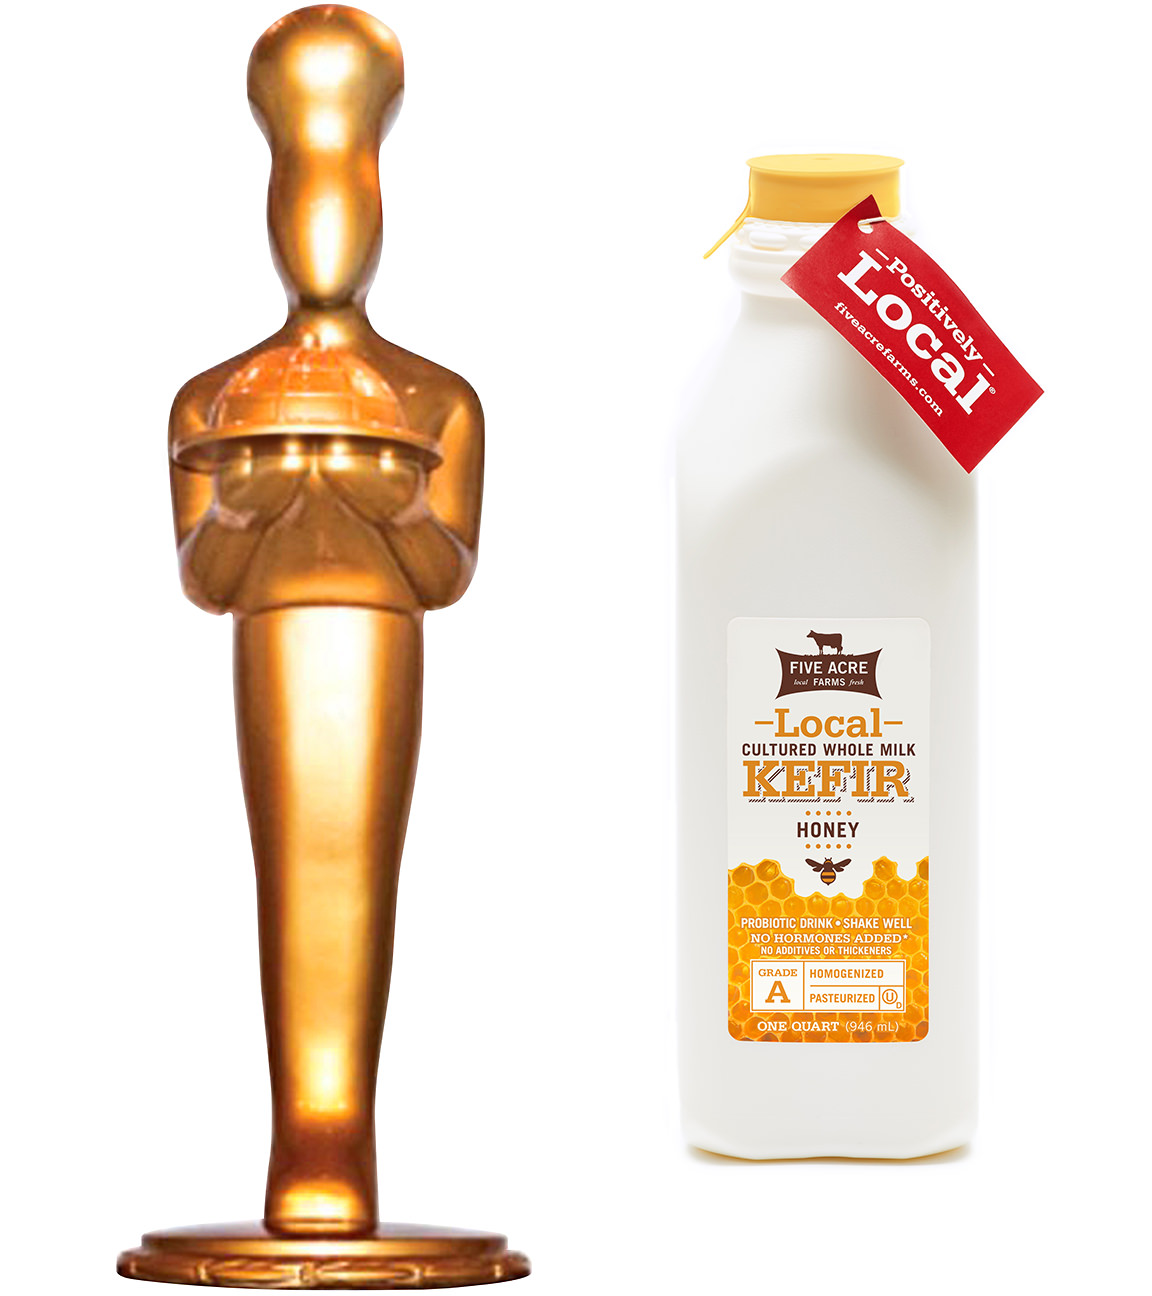 sofi-statue SWEEET... HONEY KEFIR WINS GOLD!